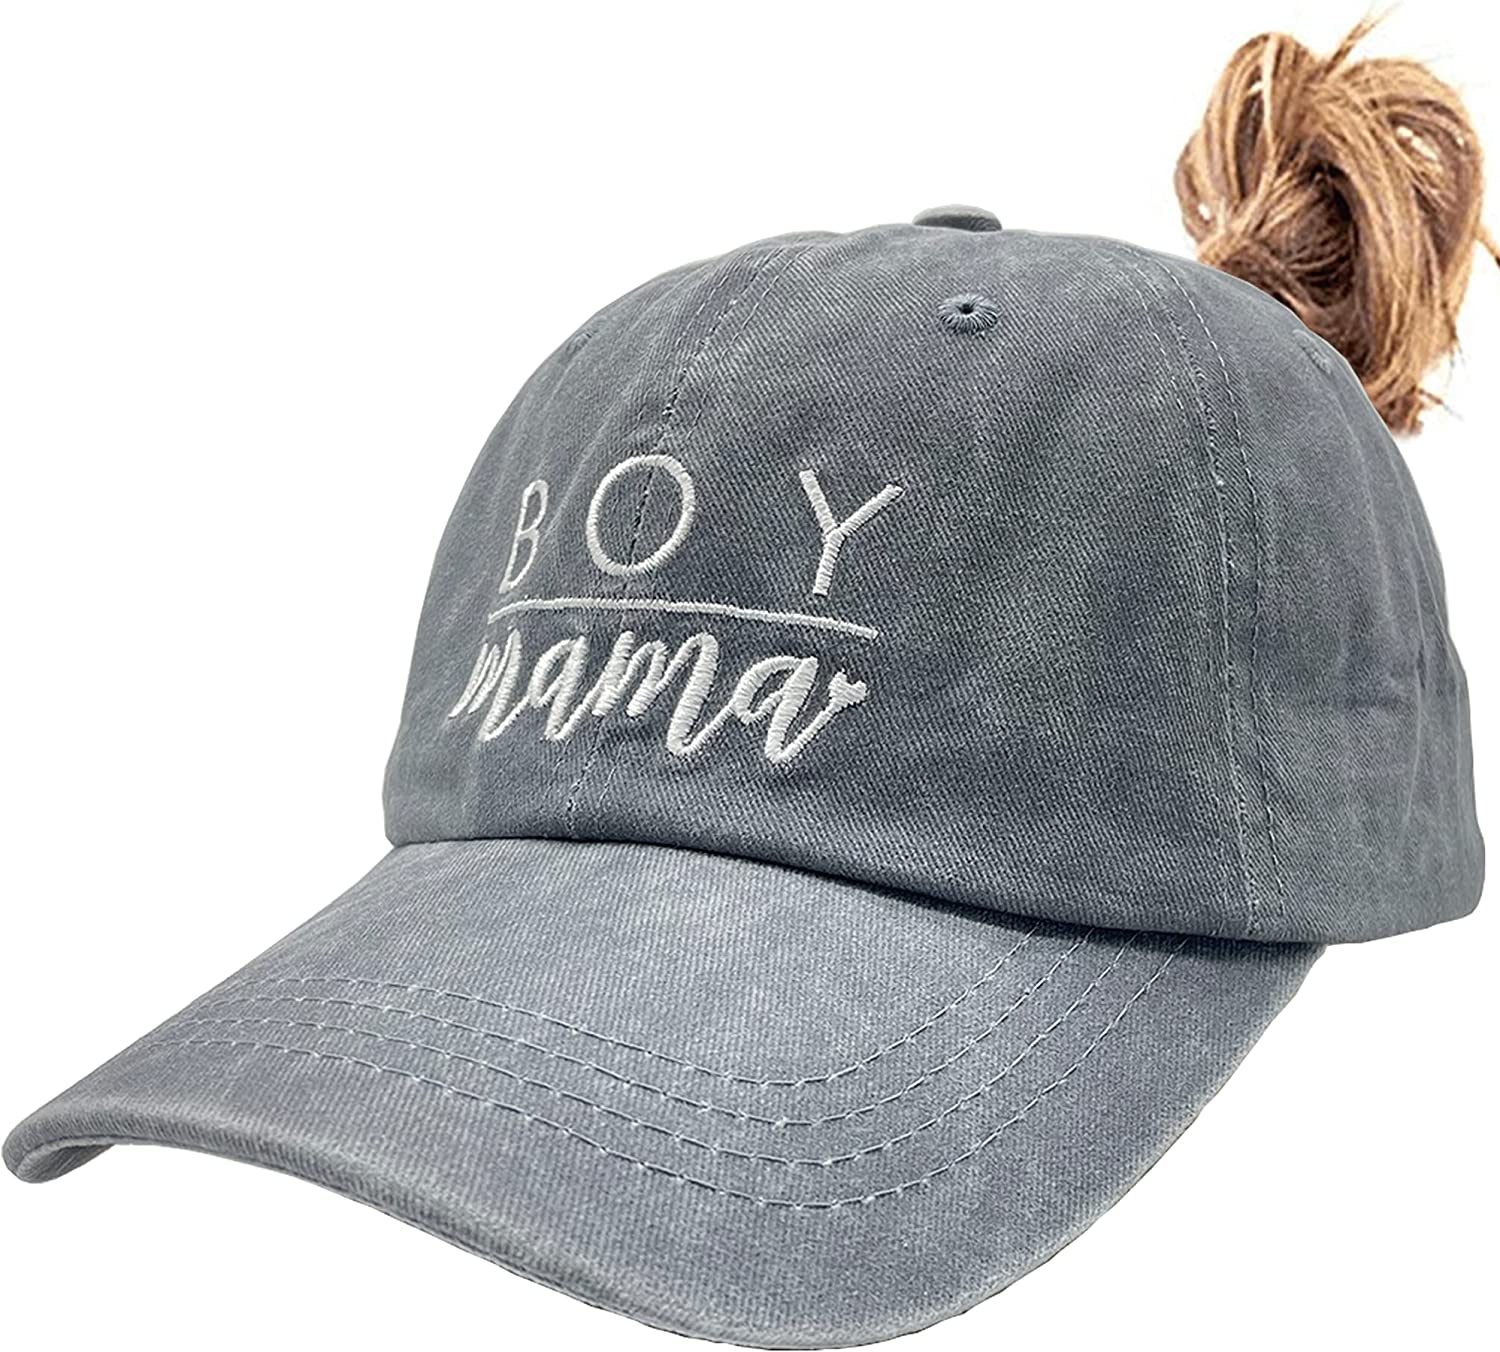 Women's Embroidered Ponytail Baseball Cap Boy Mama Mom Vintage Distressed Dad Hat